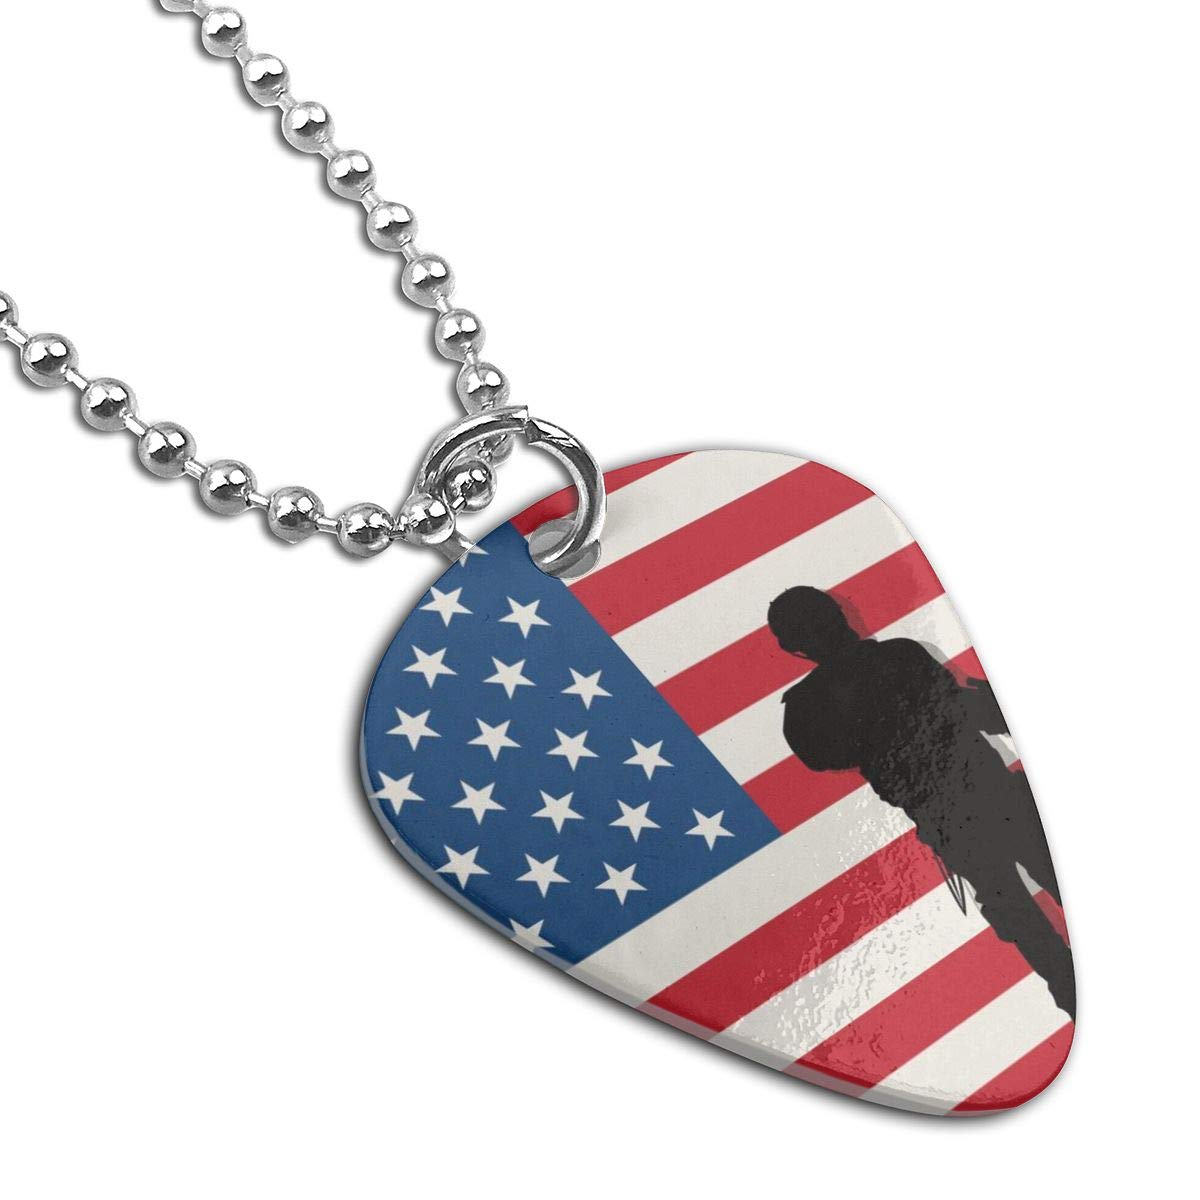 Armed Soldiers Custom Guitar Pick Pendant Necklace Keychain